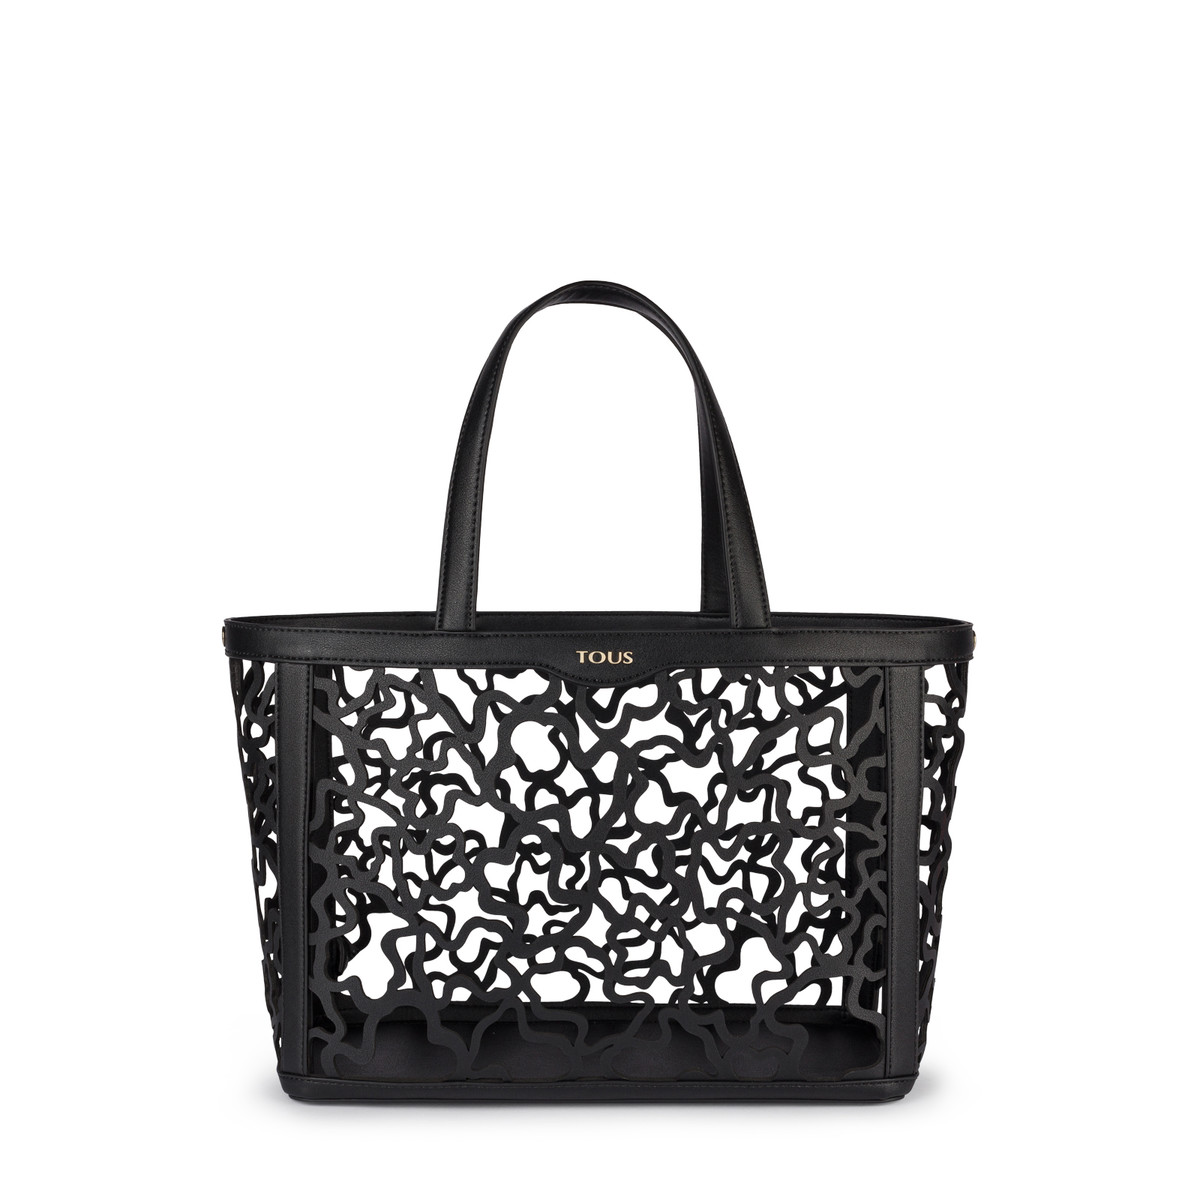 310634e270 Medium black colored Kaos Shock Tote bag - Tous Site US